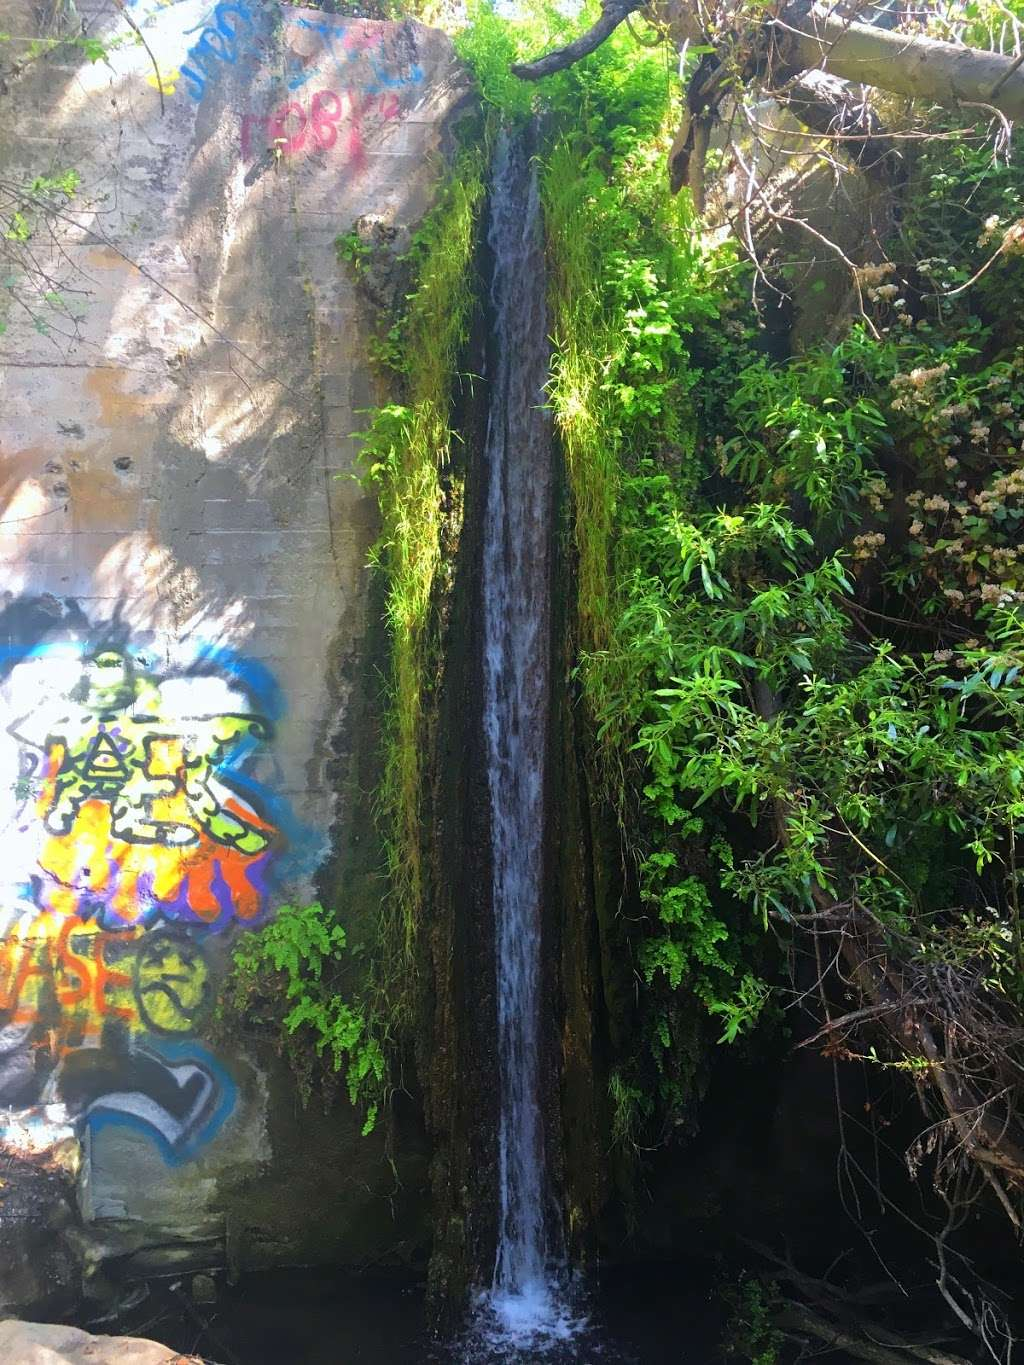 Hidden Waterfall - park  | Photo 1 of 1 | Address: Rustic Canyon Trail, Pacific Palisades, CA 90272, USA